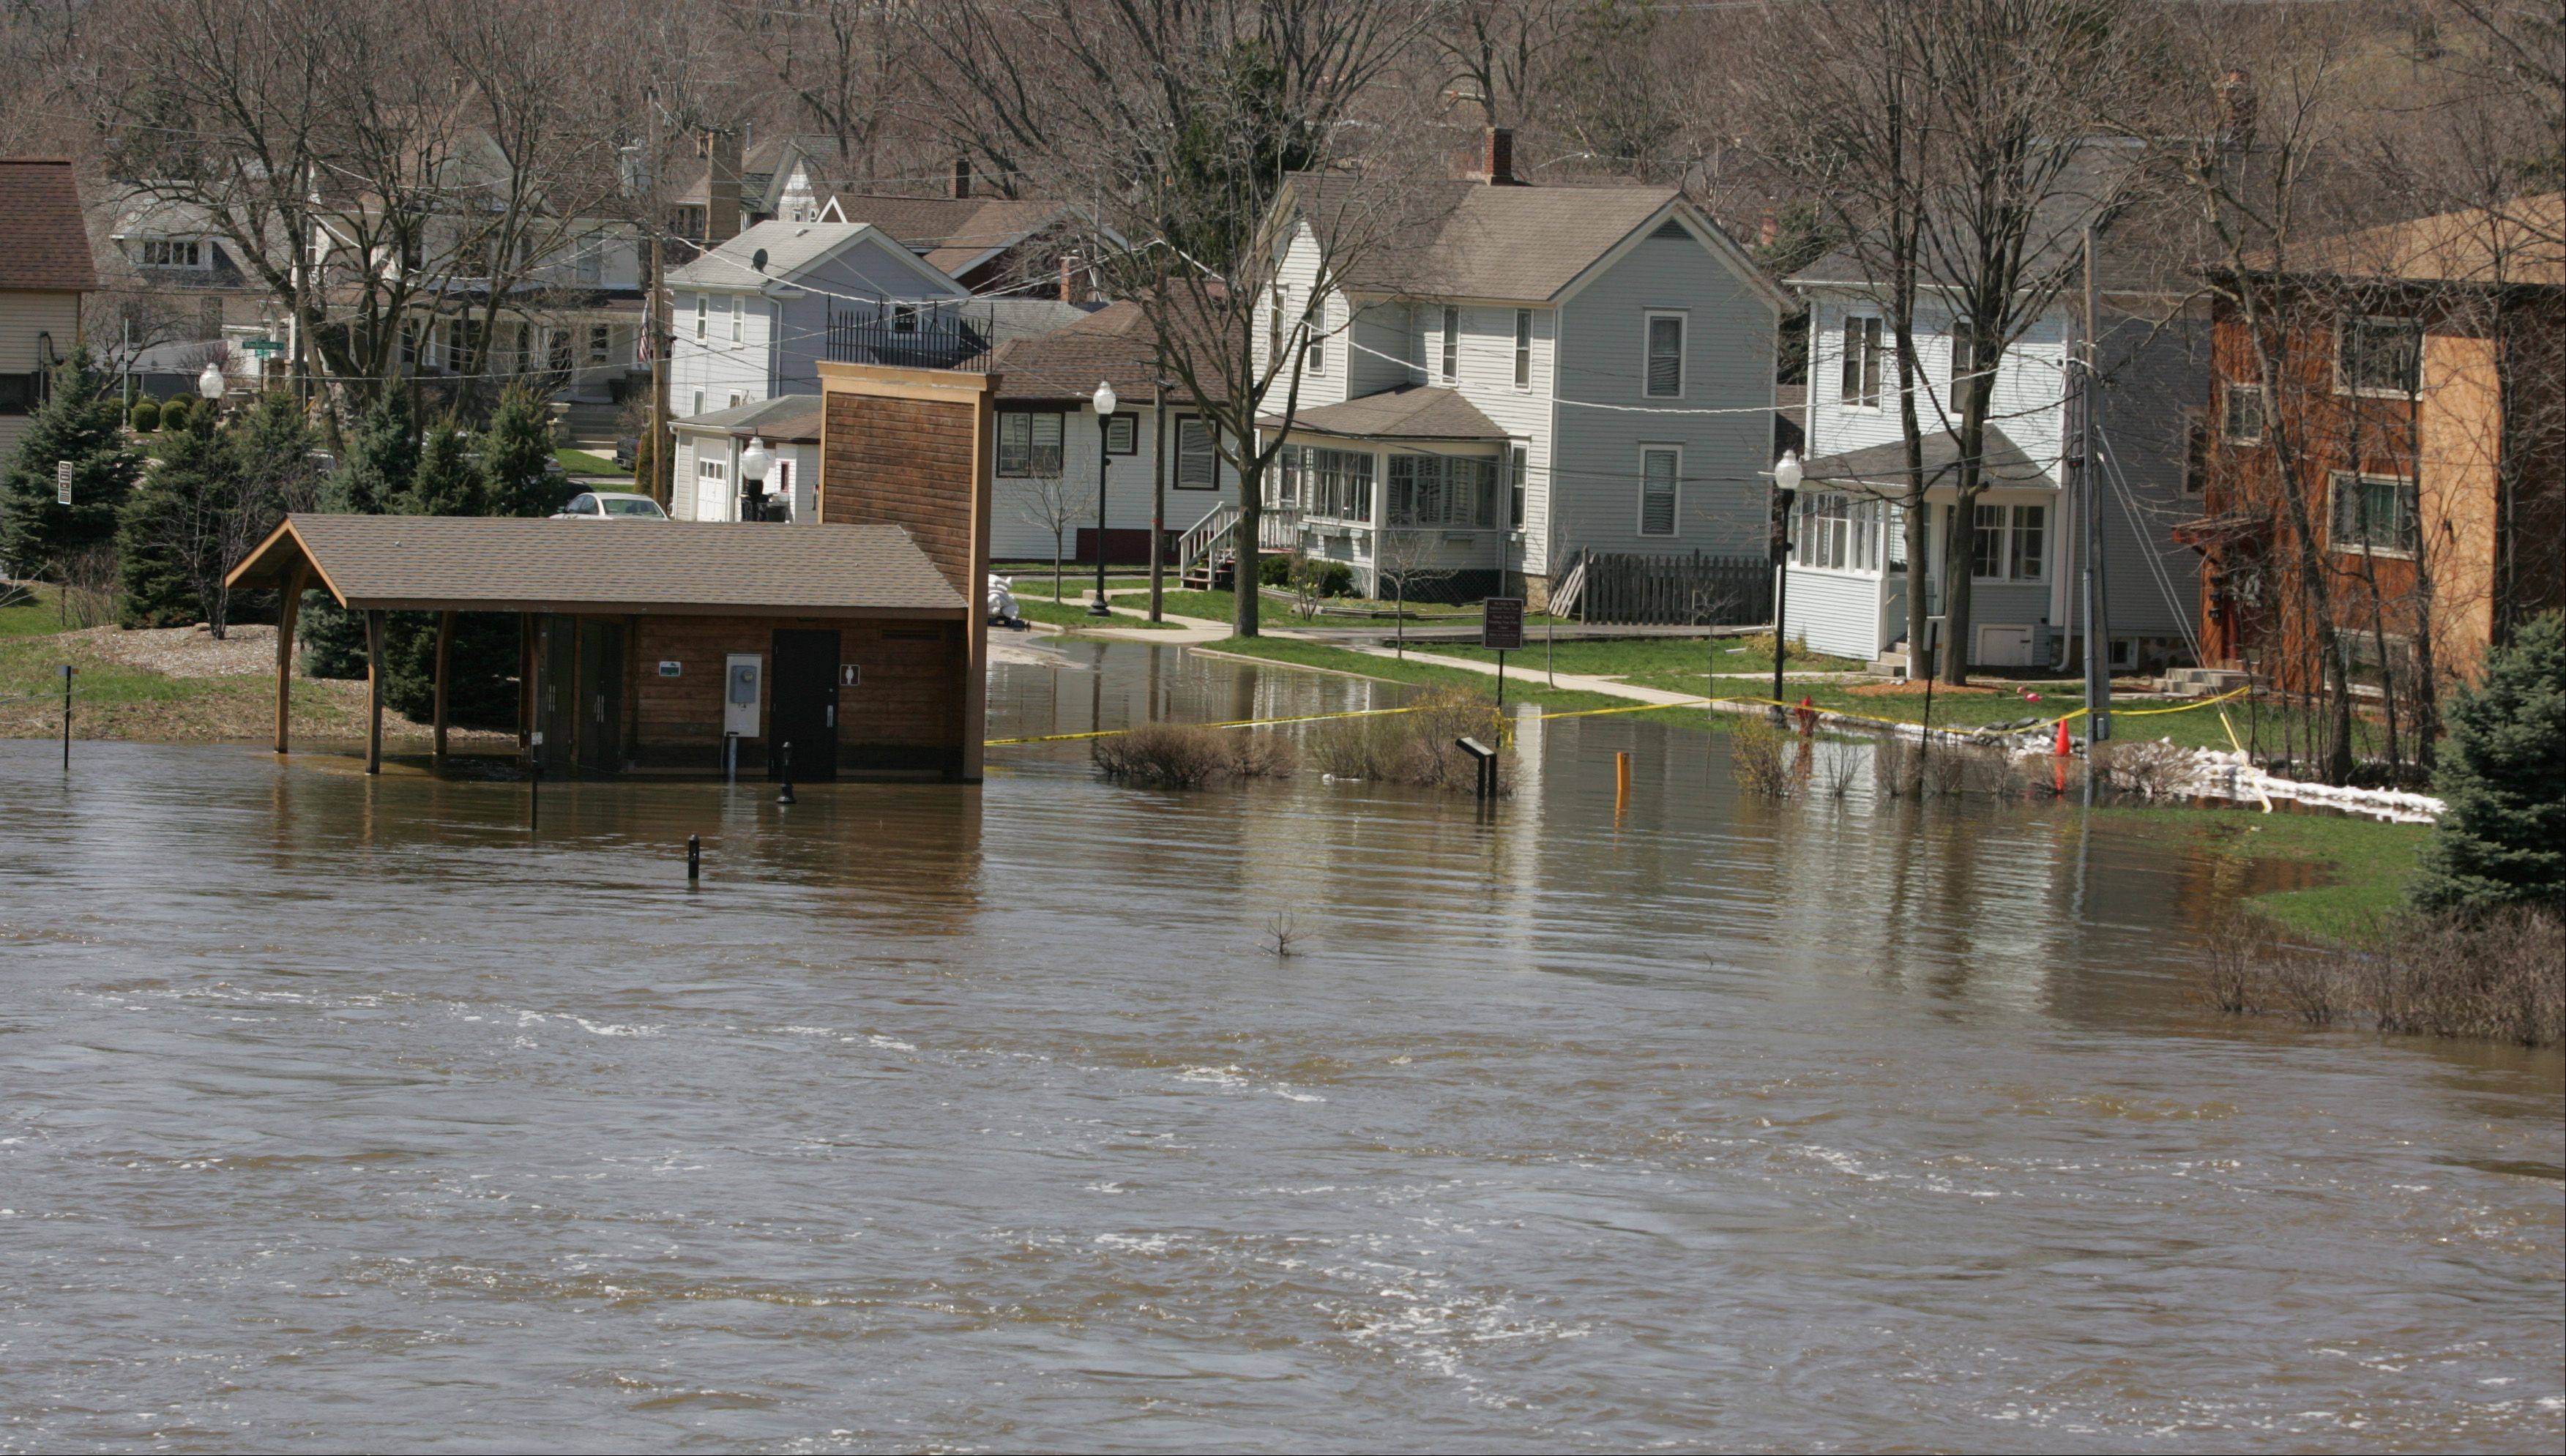 Cornish Park in Algonquin, and several homes south of it, remain inundated with floodwaters from the Fox River Monday morning. Several streets remain closed in the village.